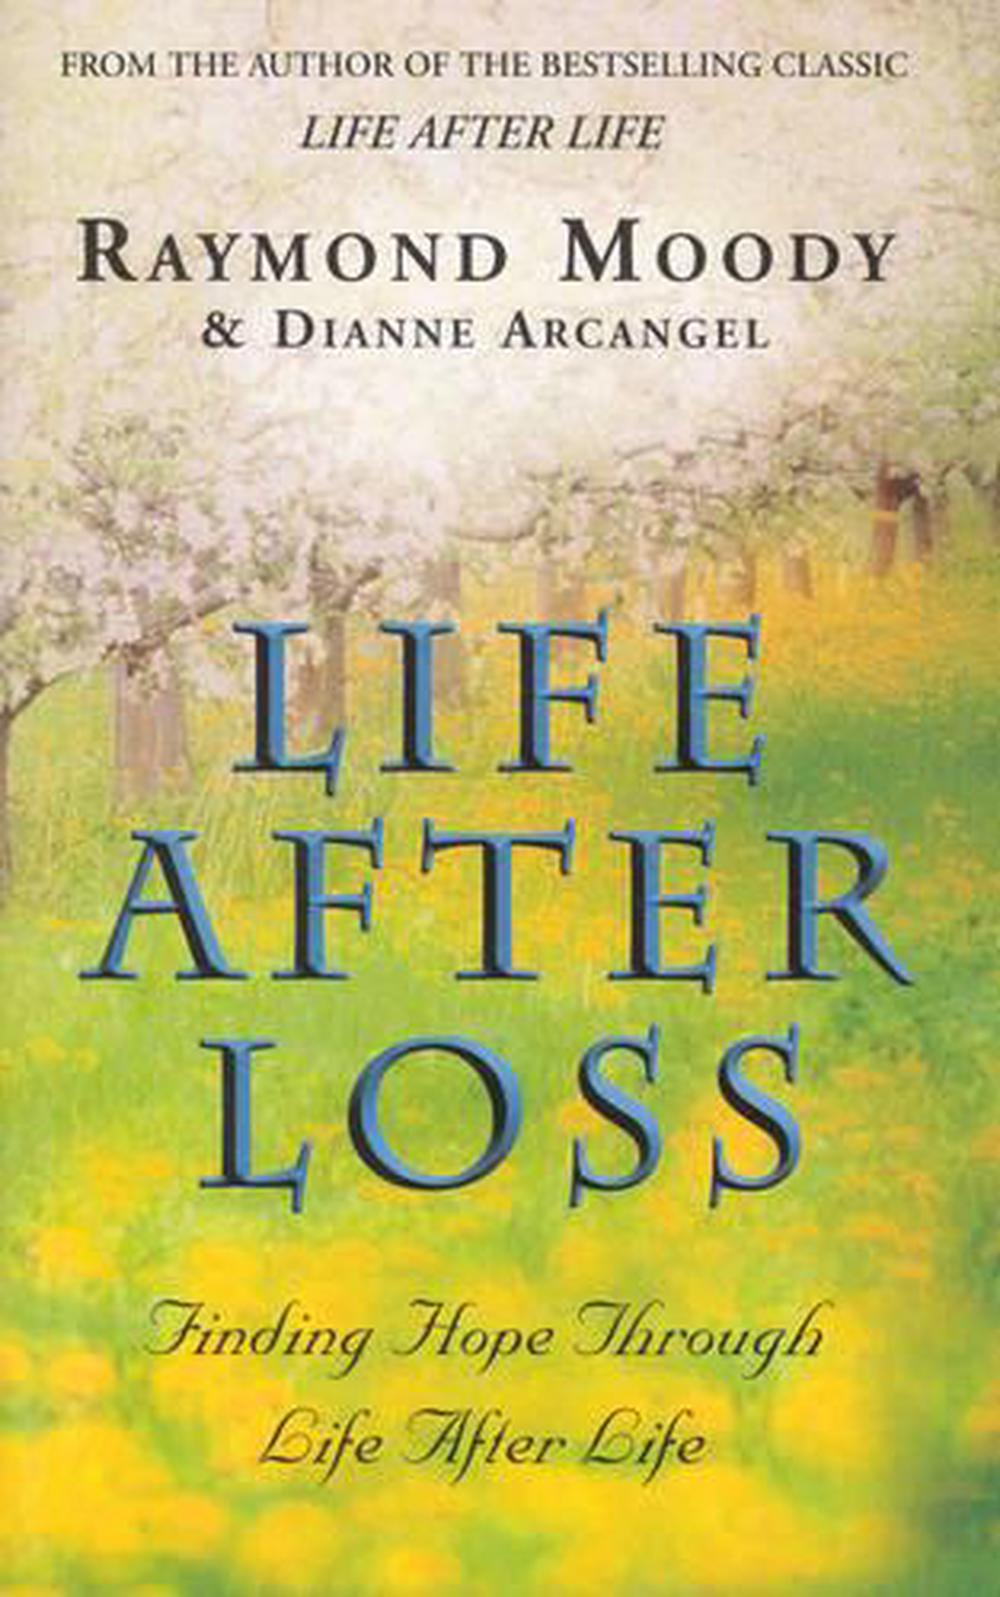 life after loss moody raymond arcangel dianne